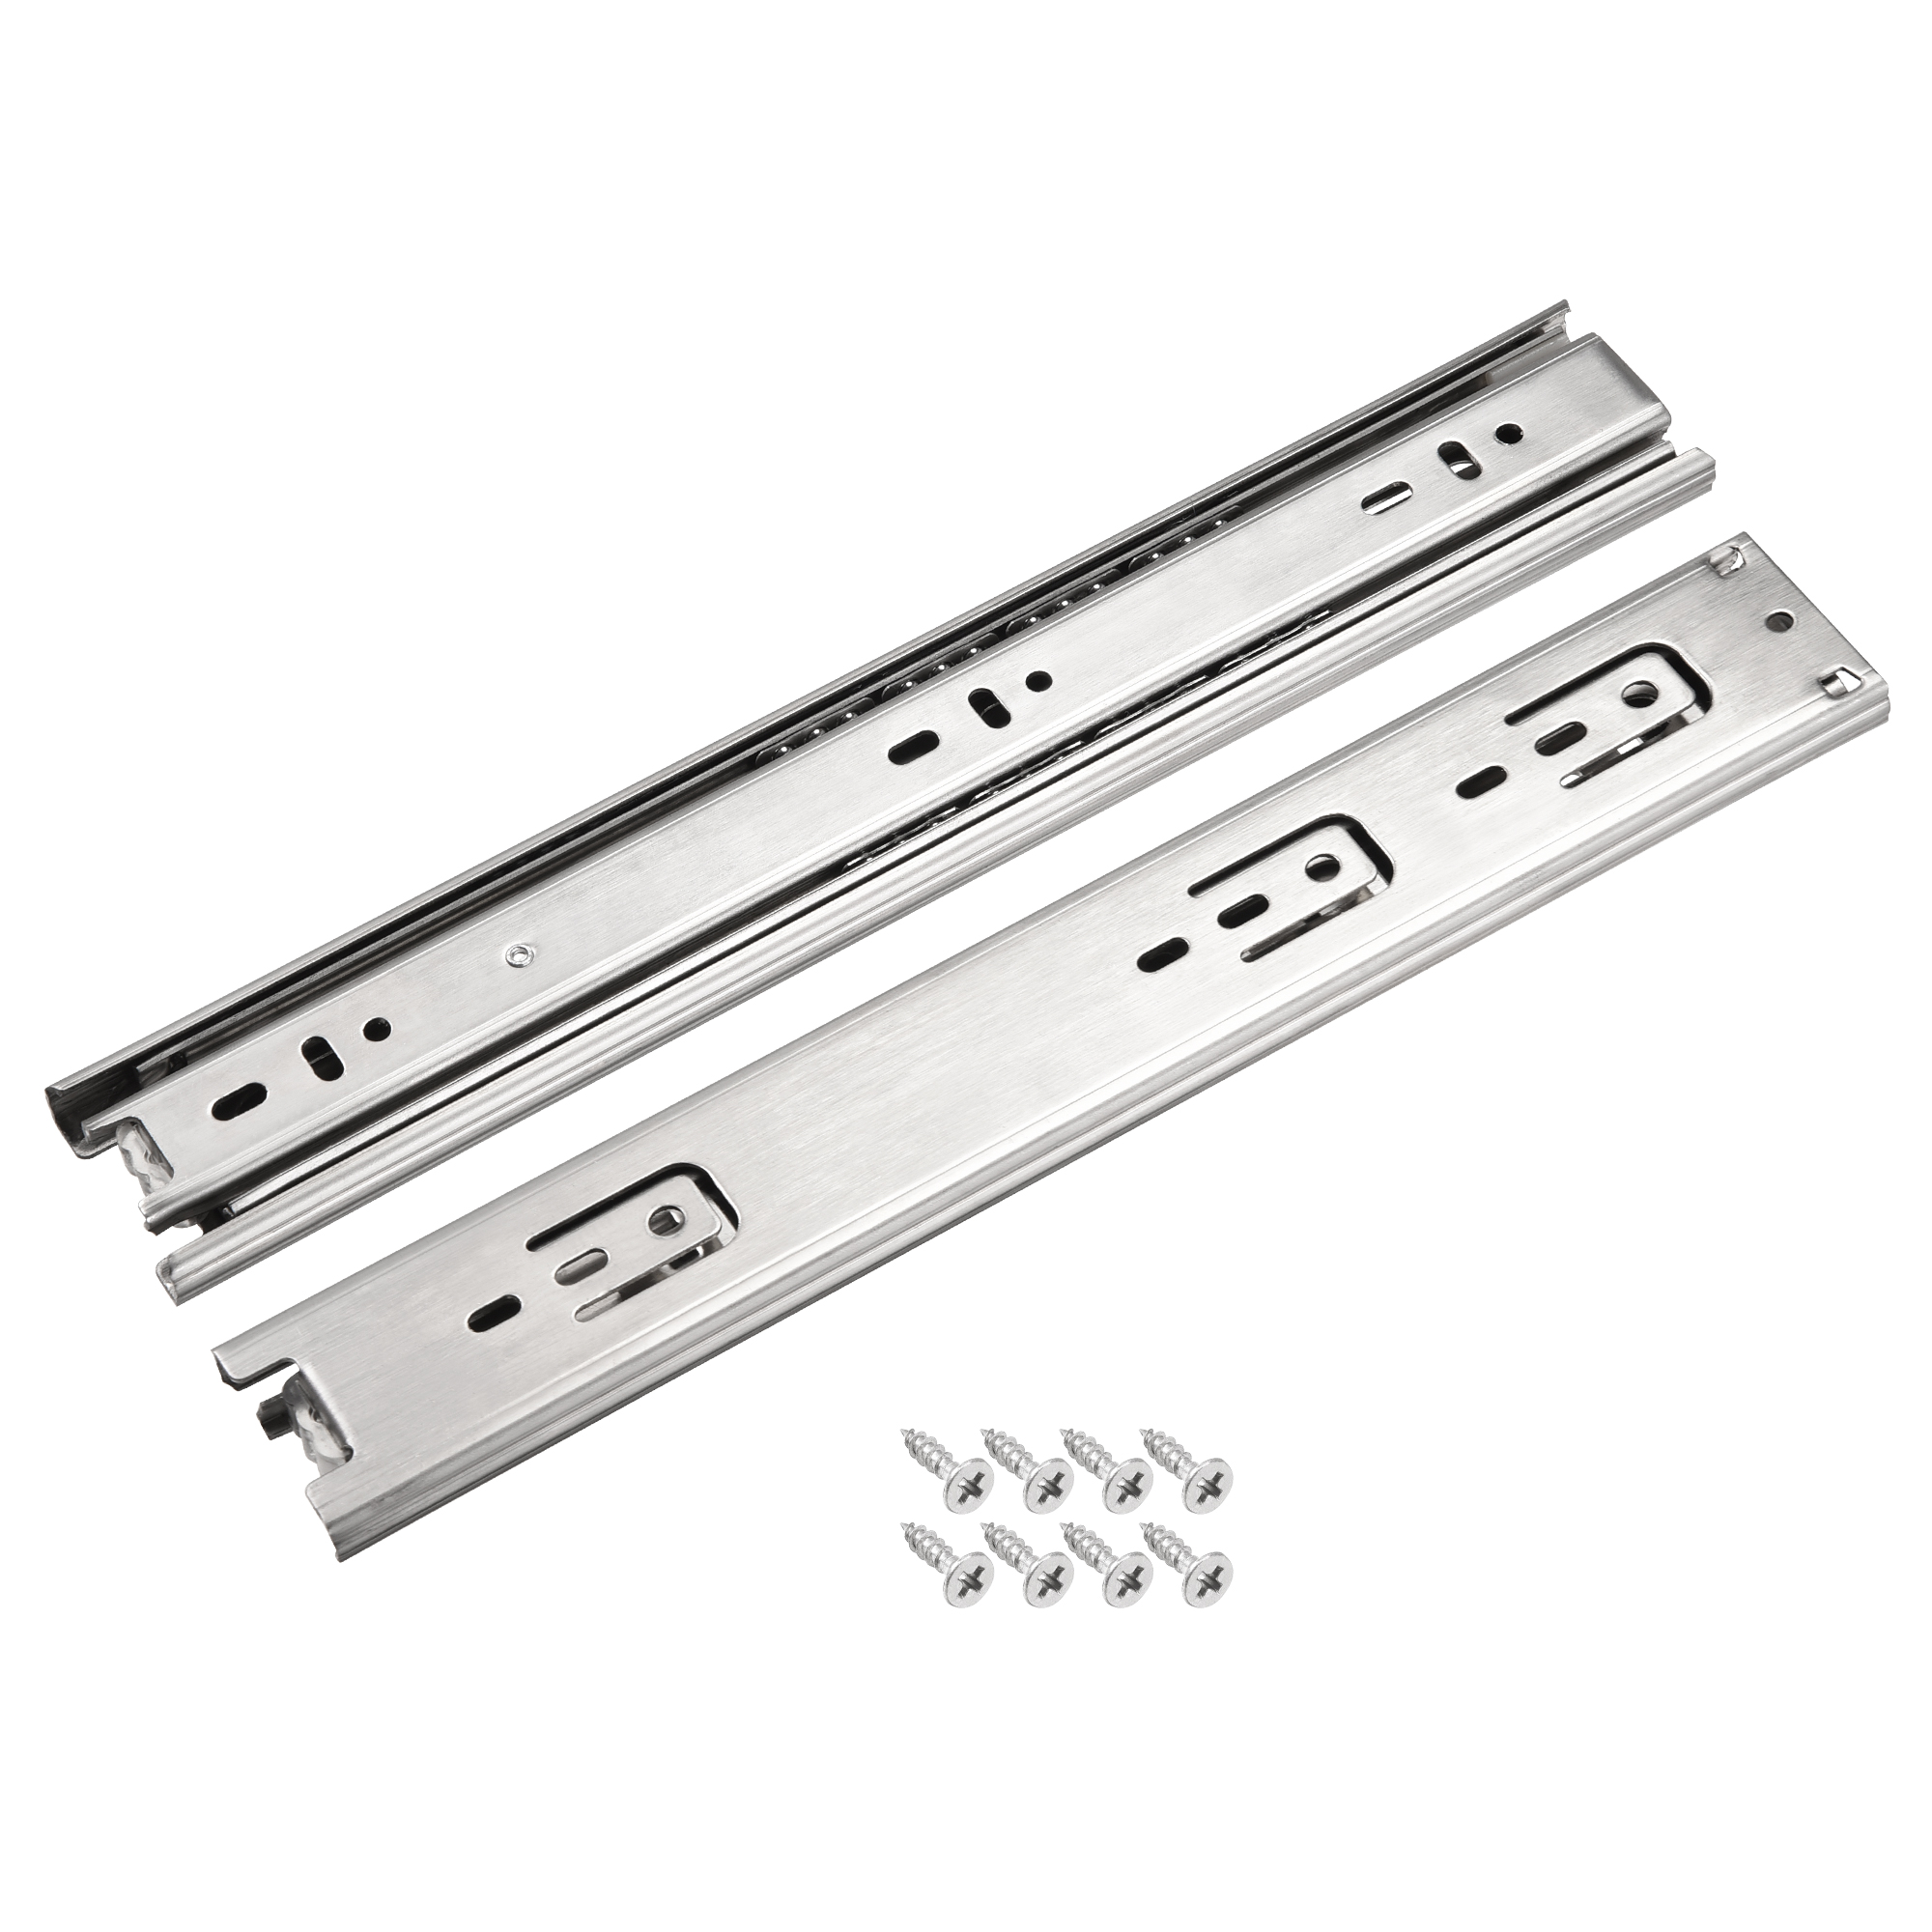 11.8Inch Drawer Slides Ball Bearing Track Rail 45mm Wide 3 Sections 1 Pair